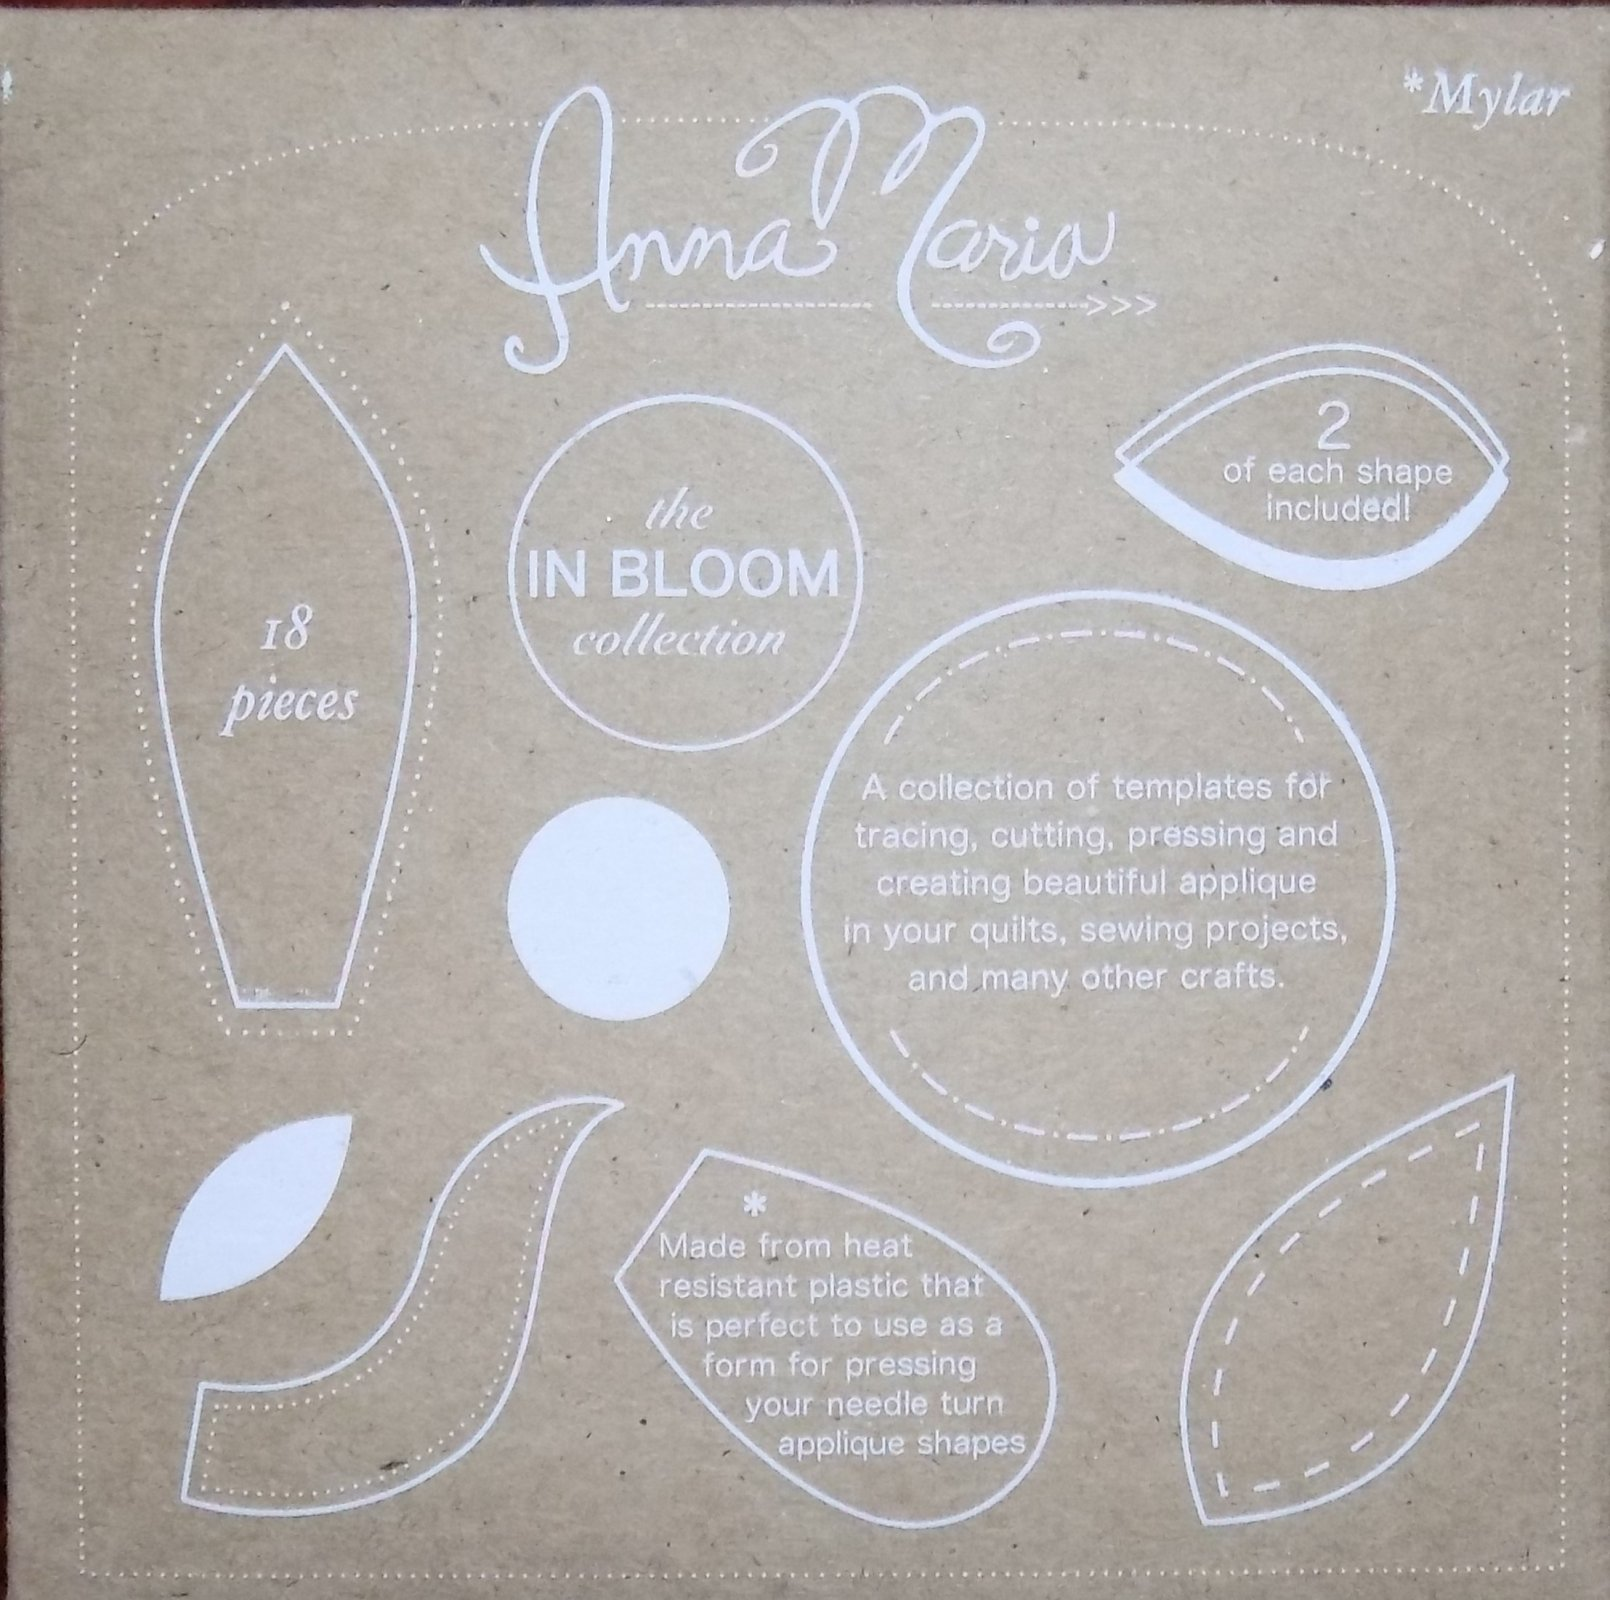 IN BLOOM Mylar Templates